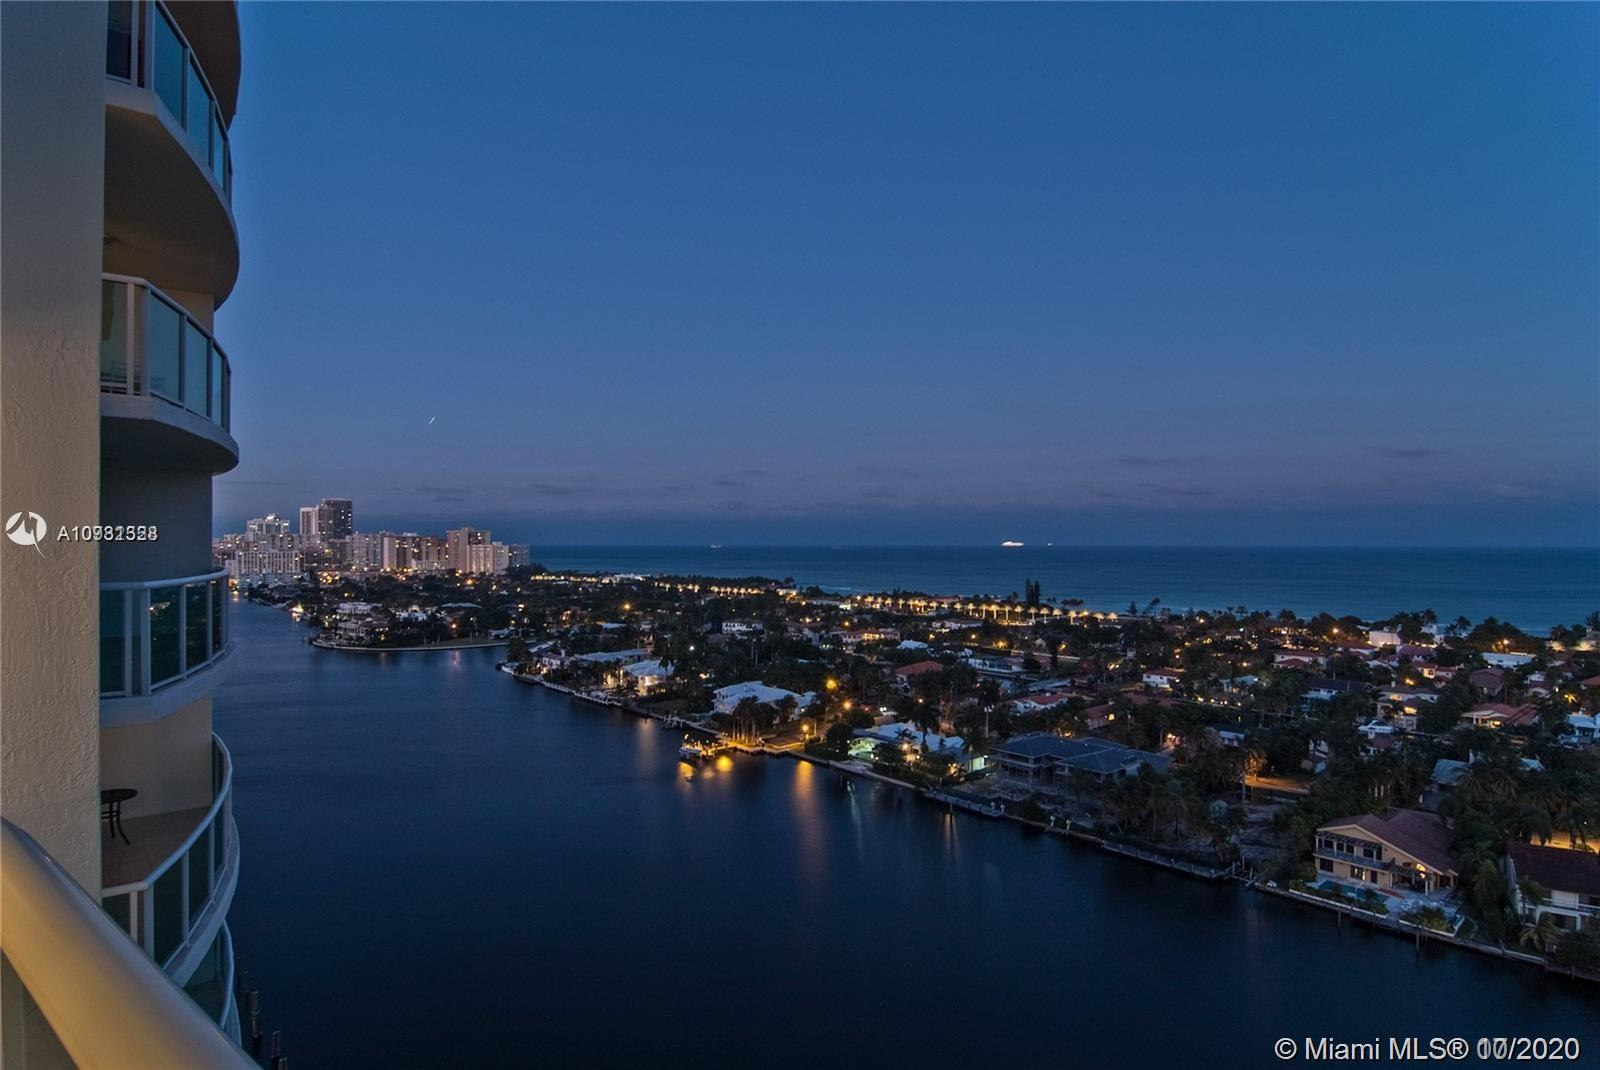 Photo of 20201 Country Club Dr #2407, Aventura, Florida, 33180 - Beautiful city and lake views from the bedrooms.